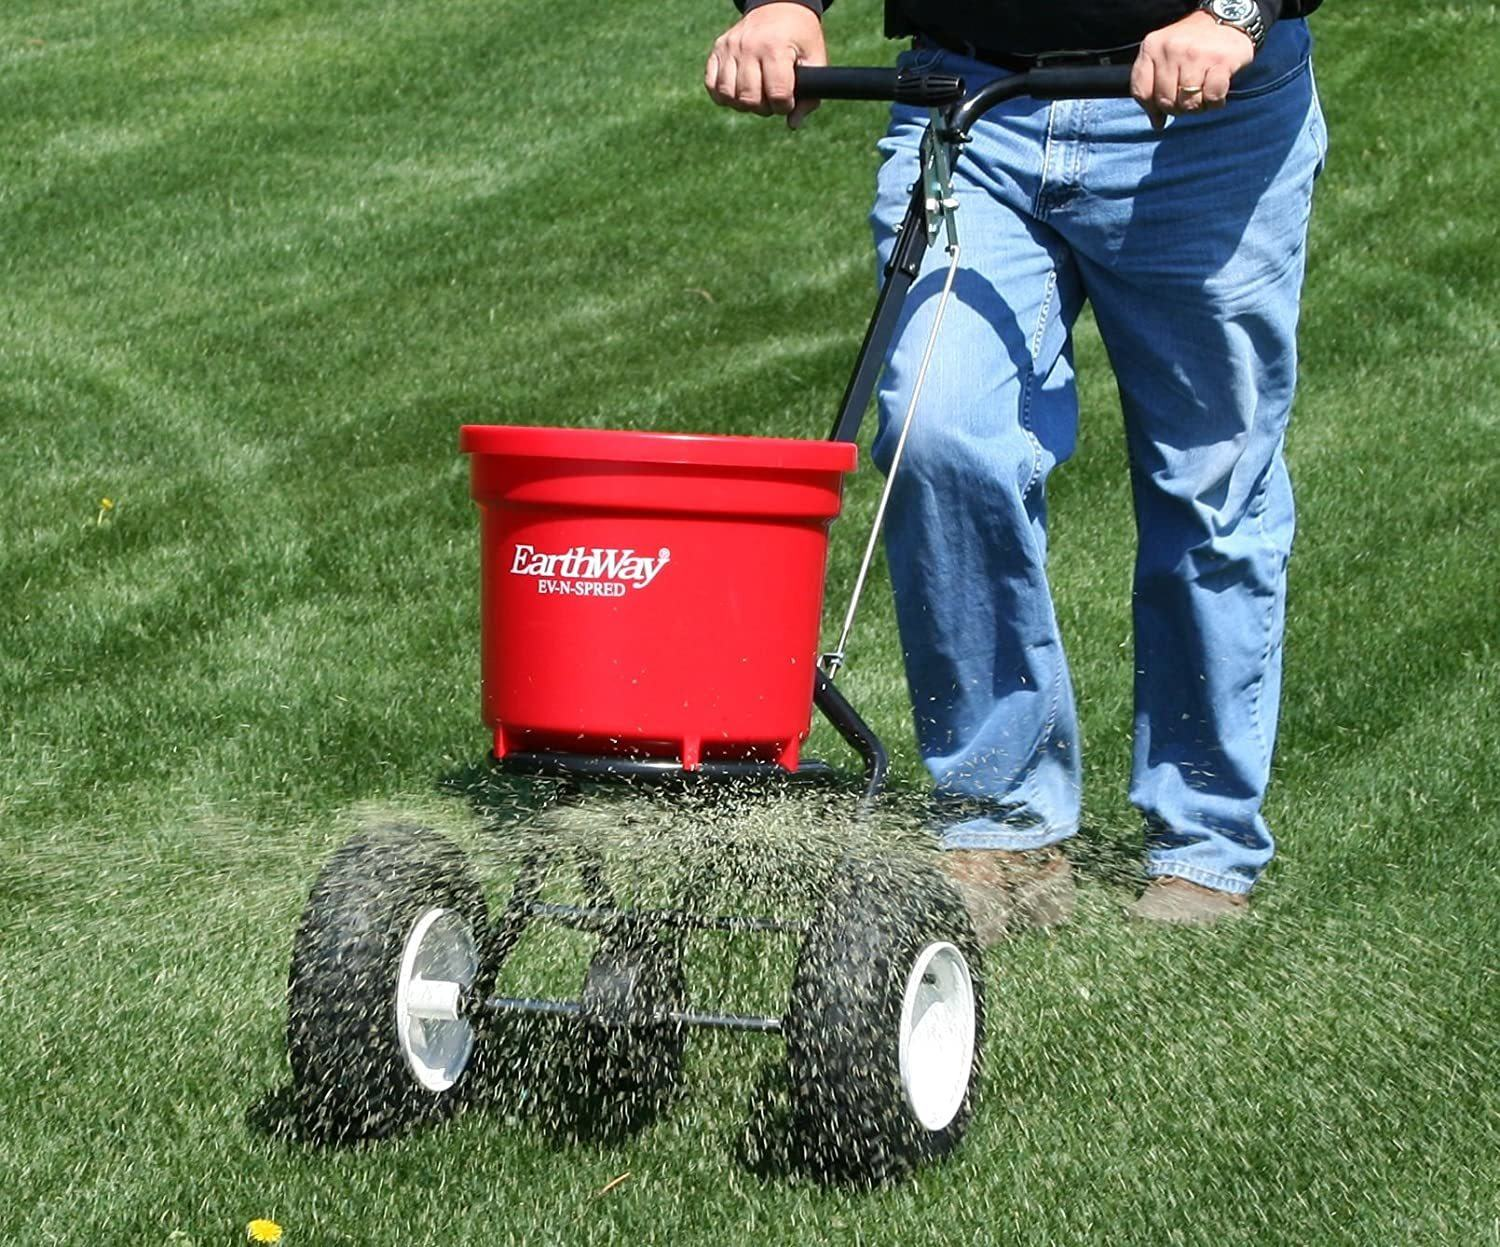 Man using Earthway spreader on his lawn distributing fertilizer